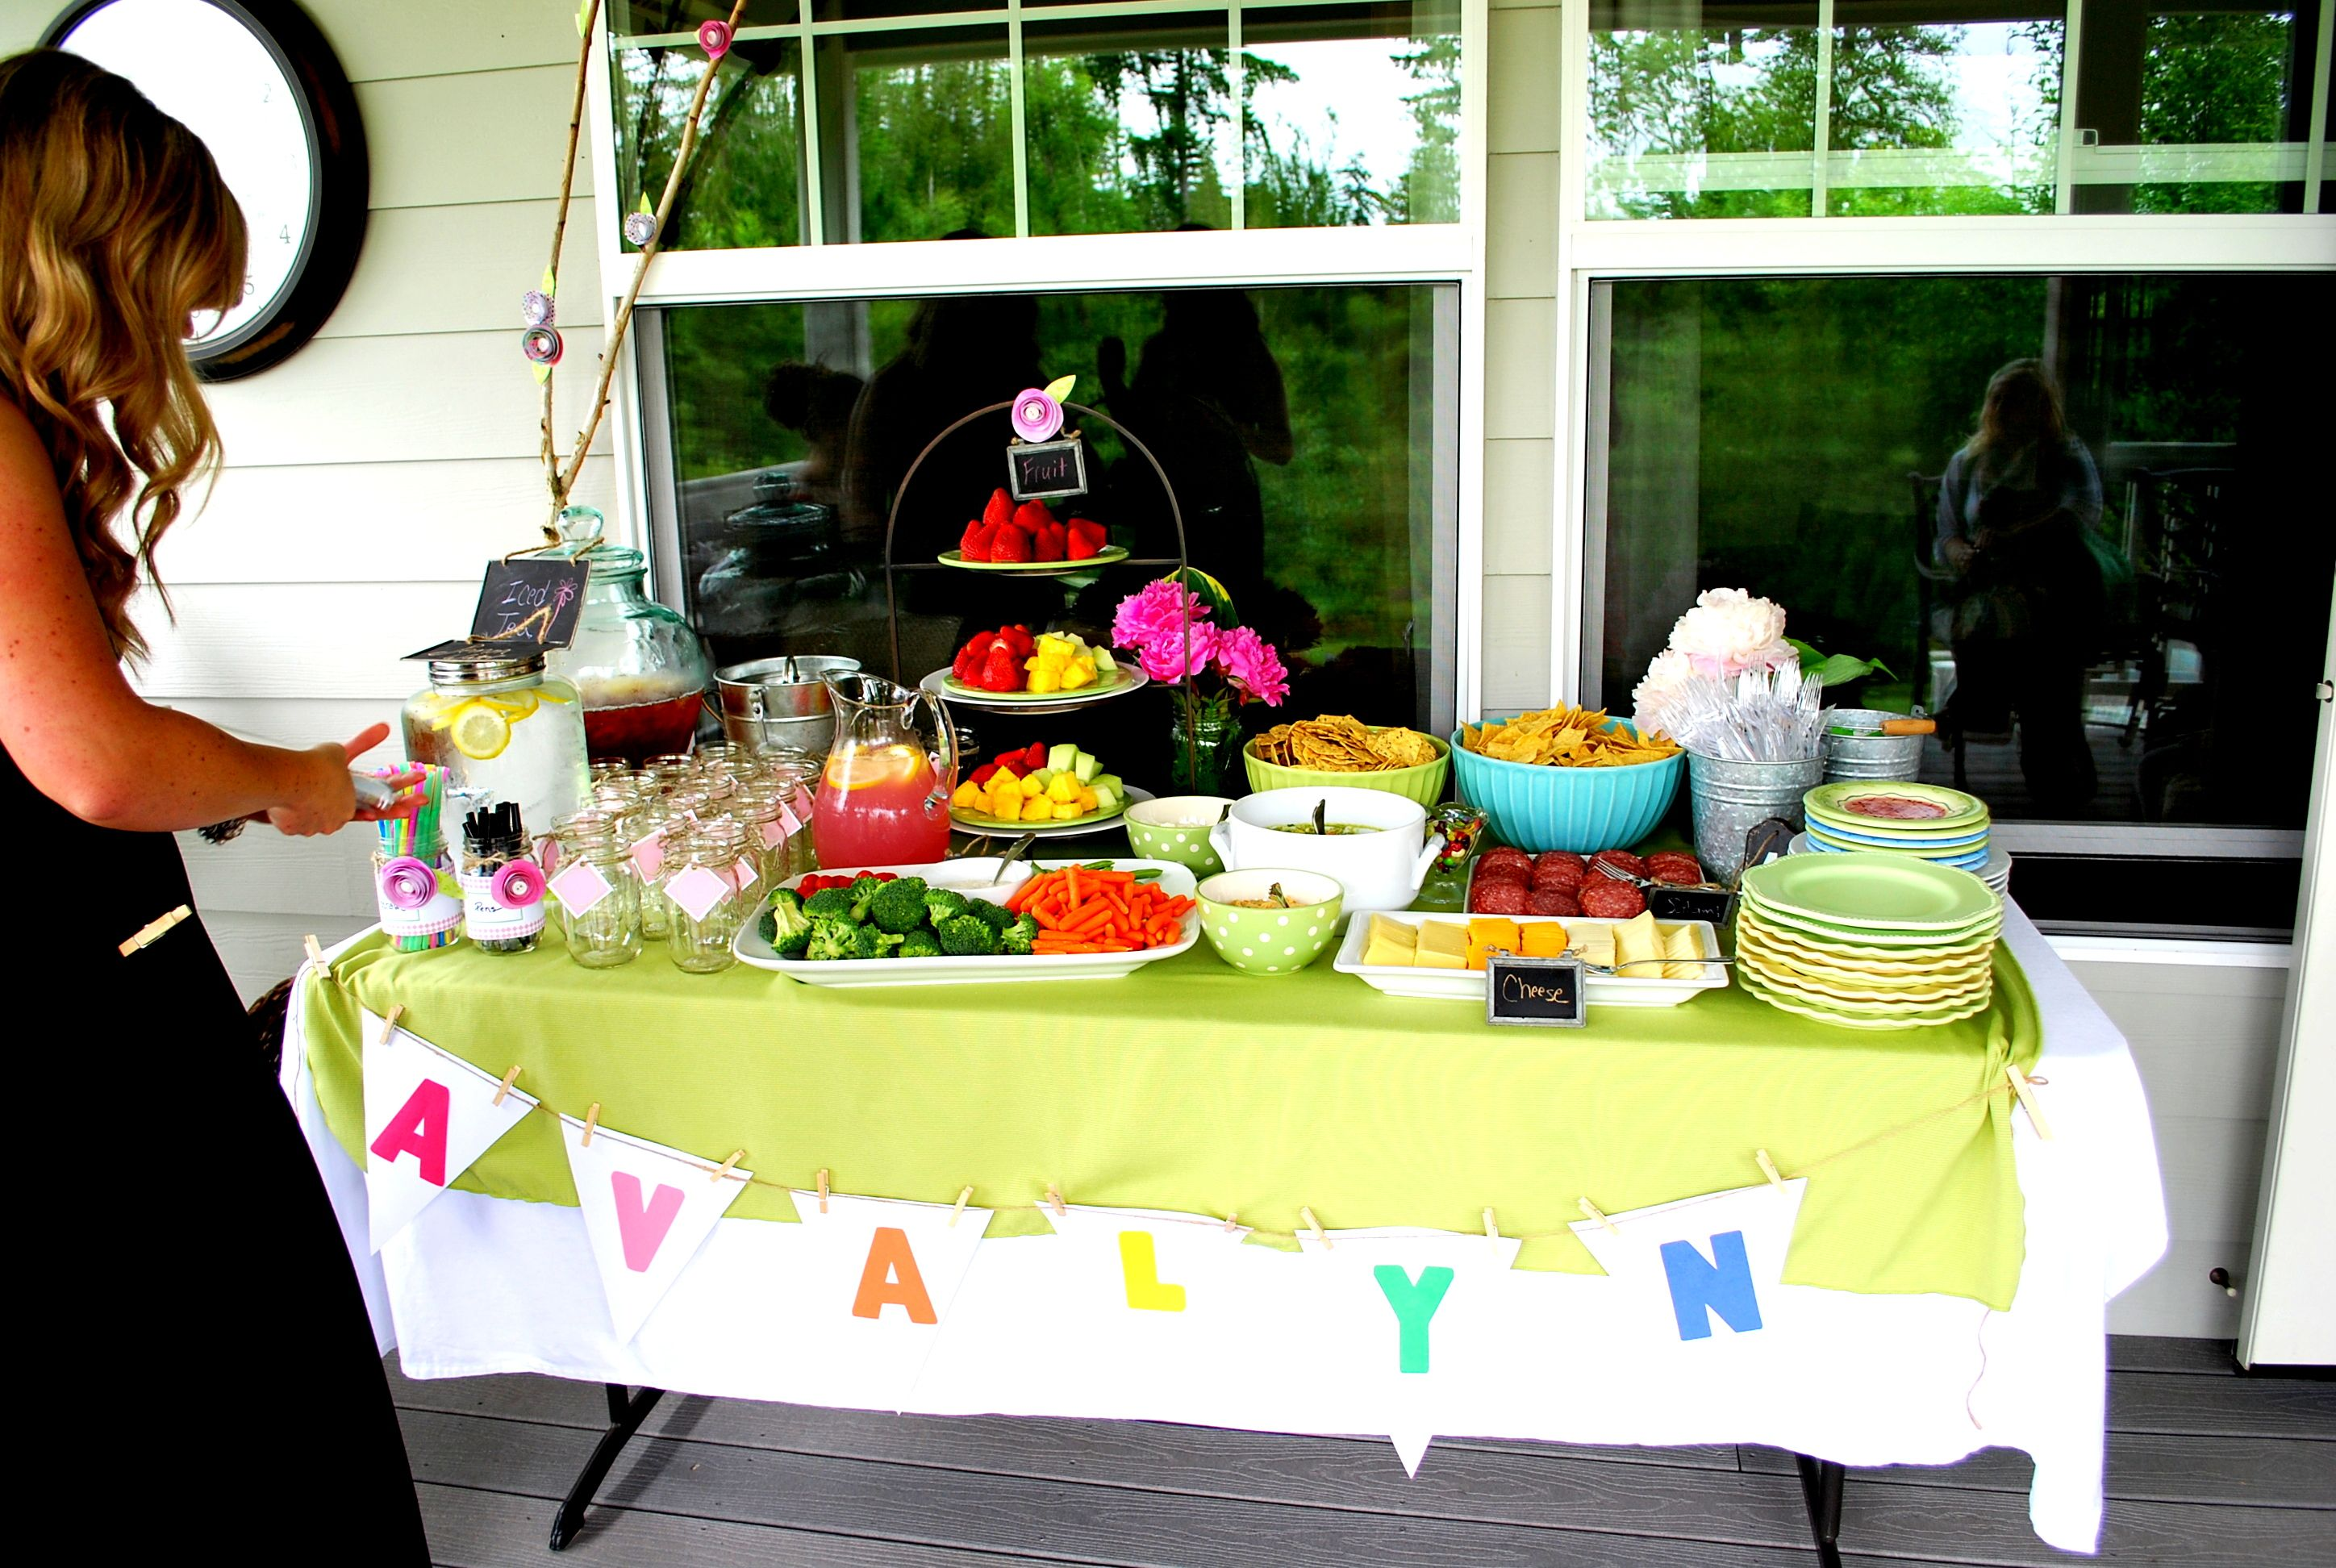 Amazing Explore Outdoor Baby Showers, Shower Images, And More!